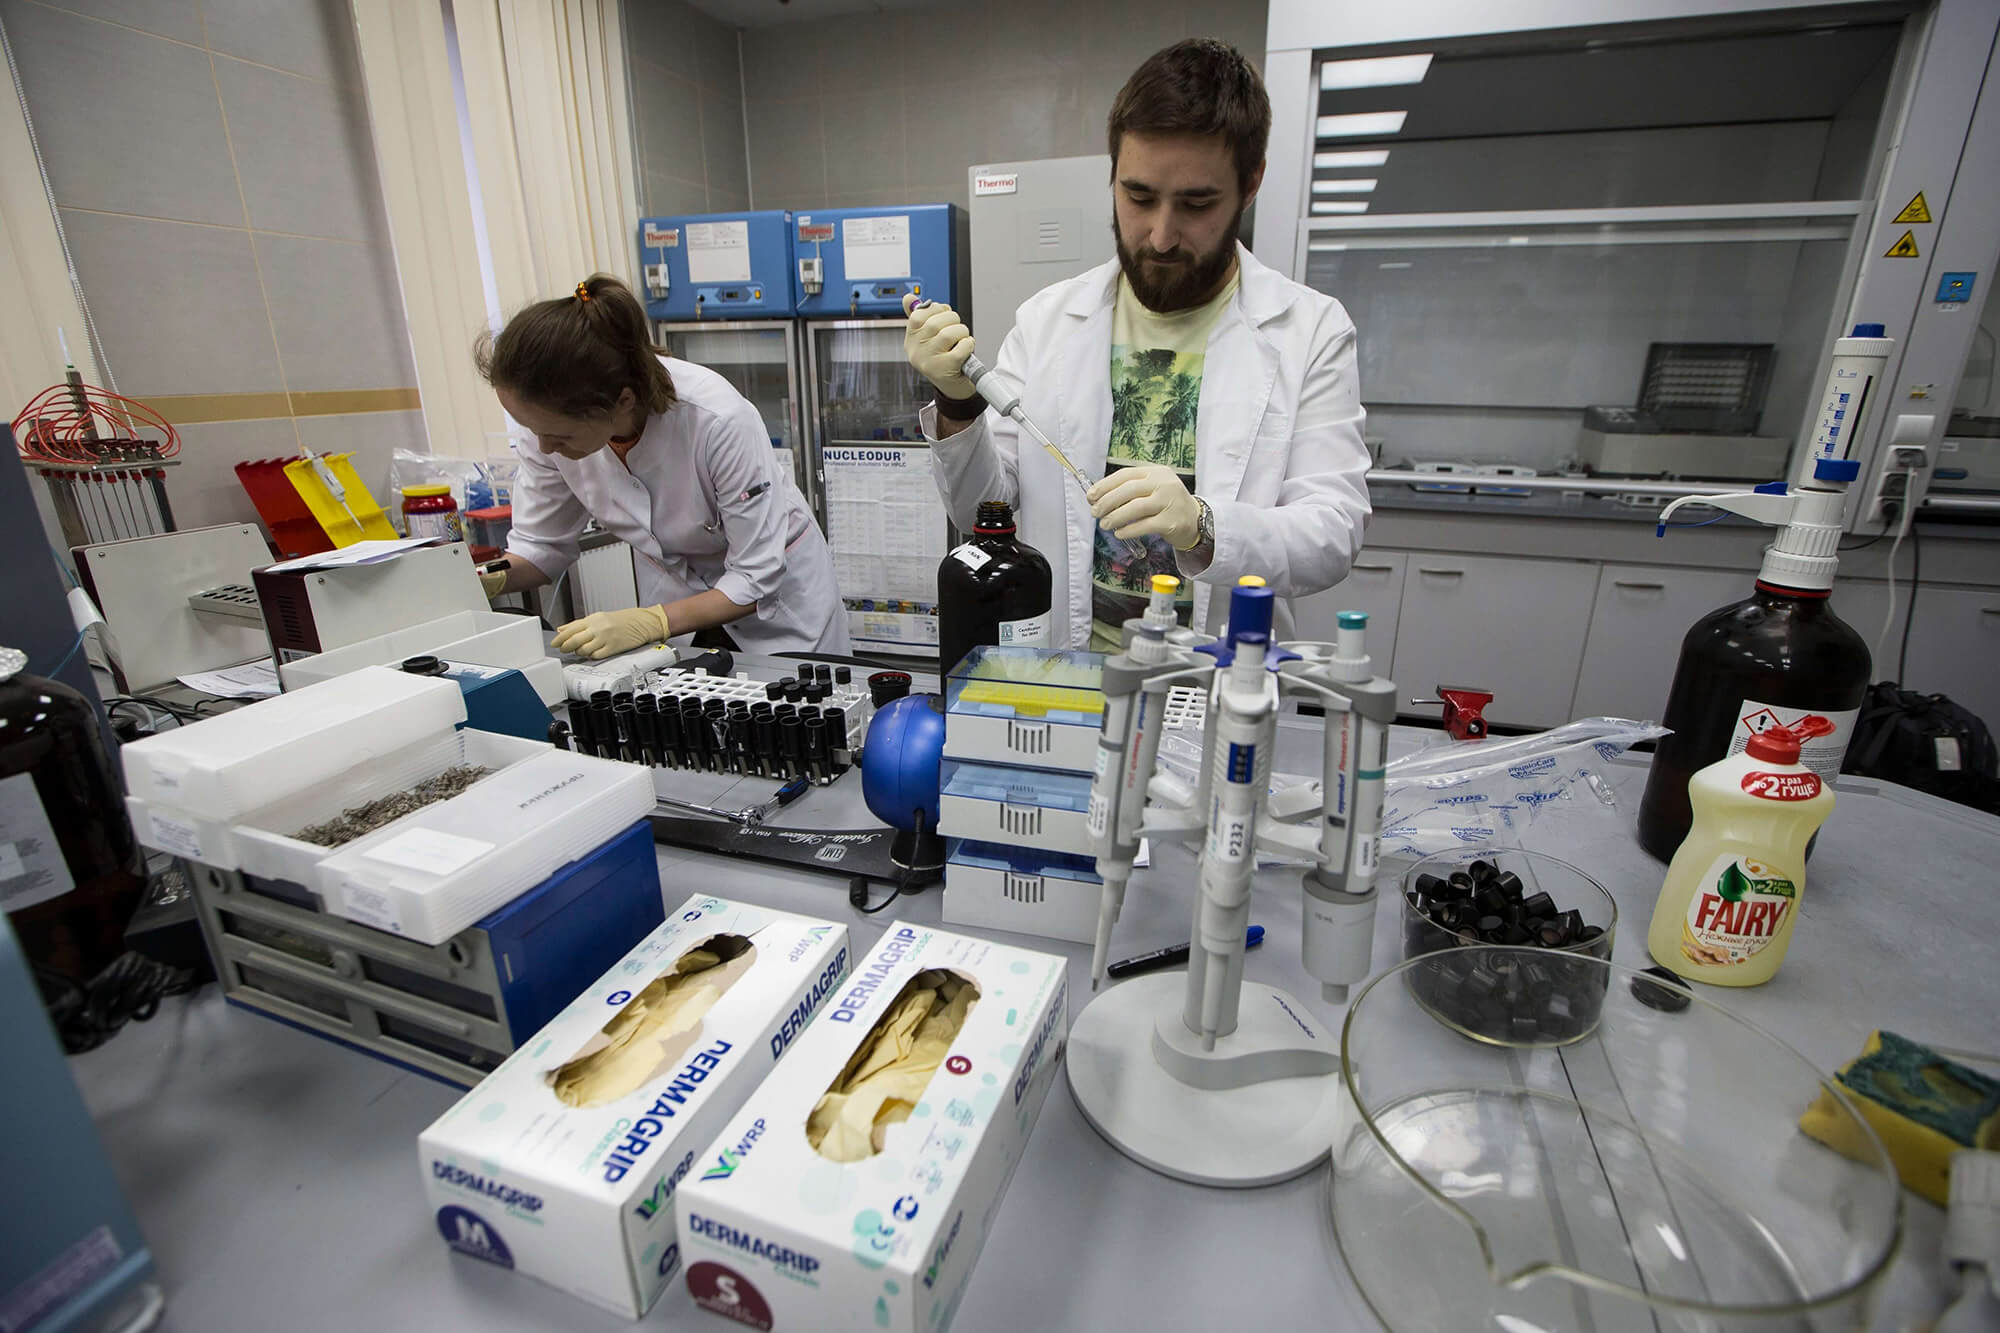 Image of two scientists in white coats in laboratory.